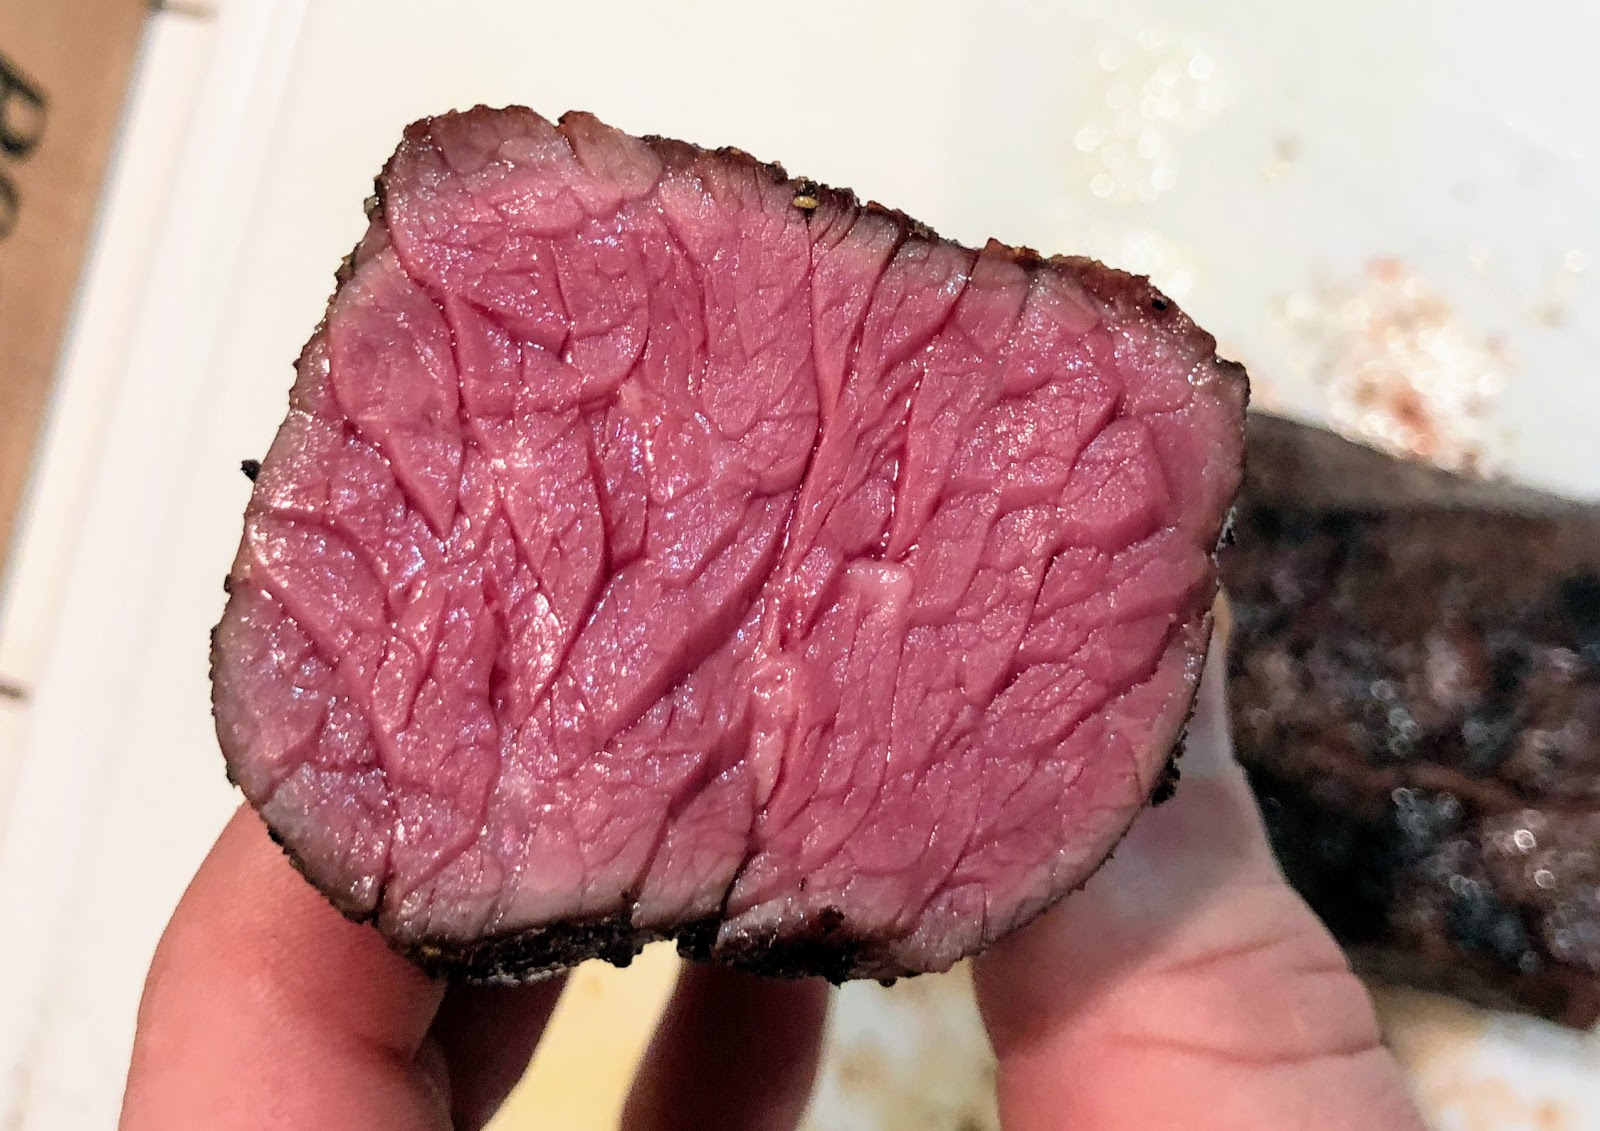 Sous Vide By Me Kosher Dosher The Majestic Hanger Steak